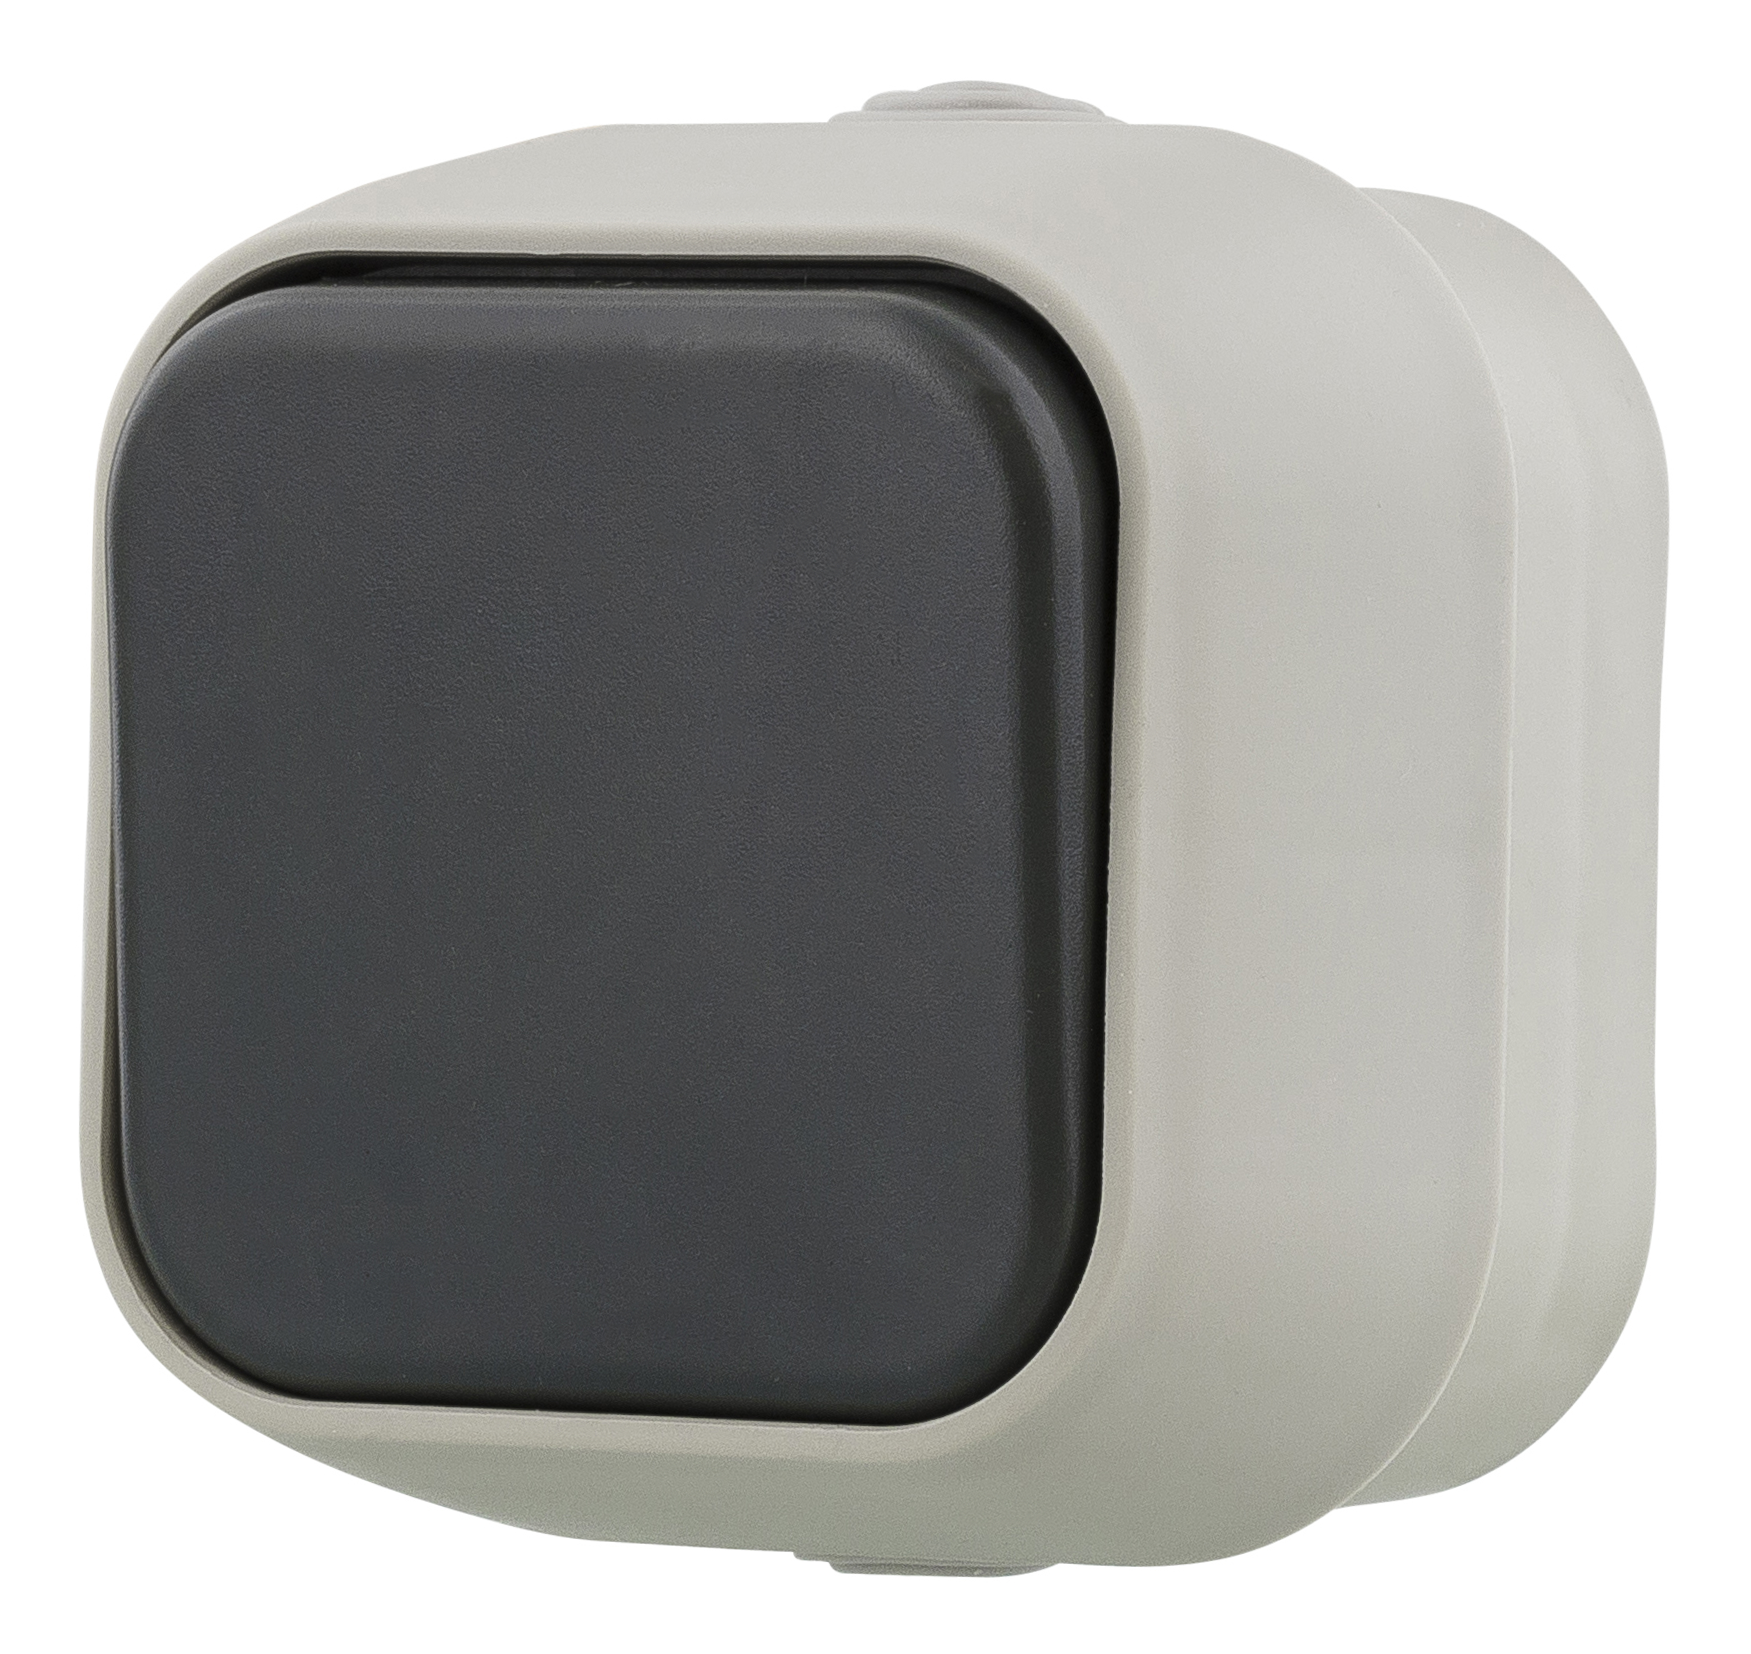 Epzi switch with a button, for surface mounting, IP54, 1 pole, gray H2-B110M (Kan sendes i brev)